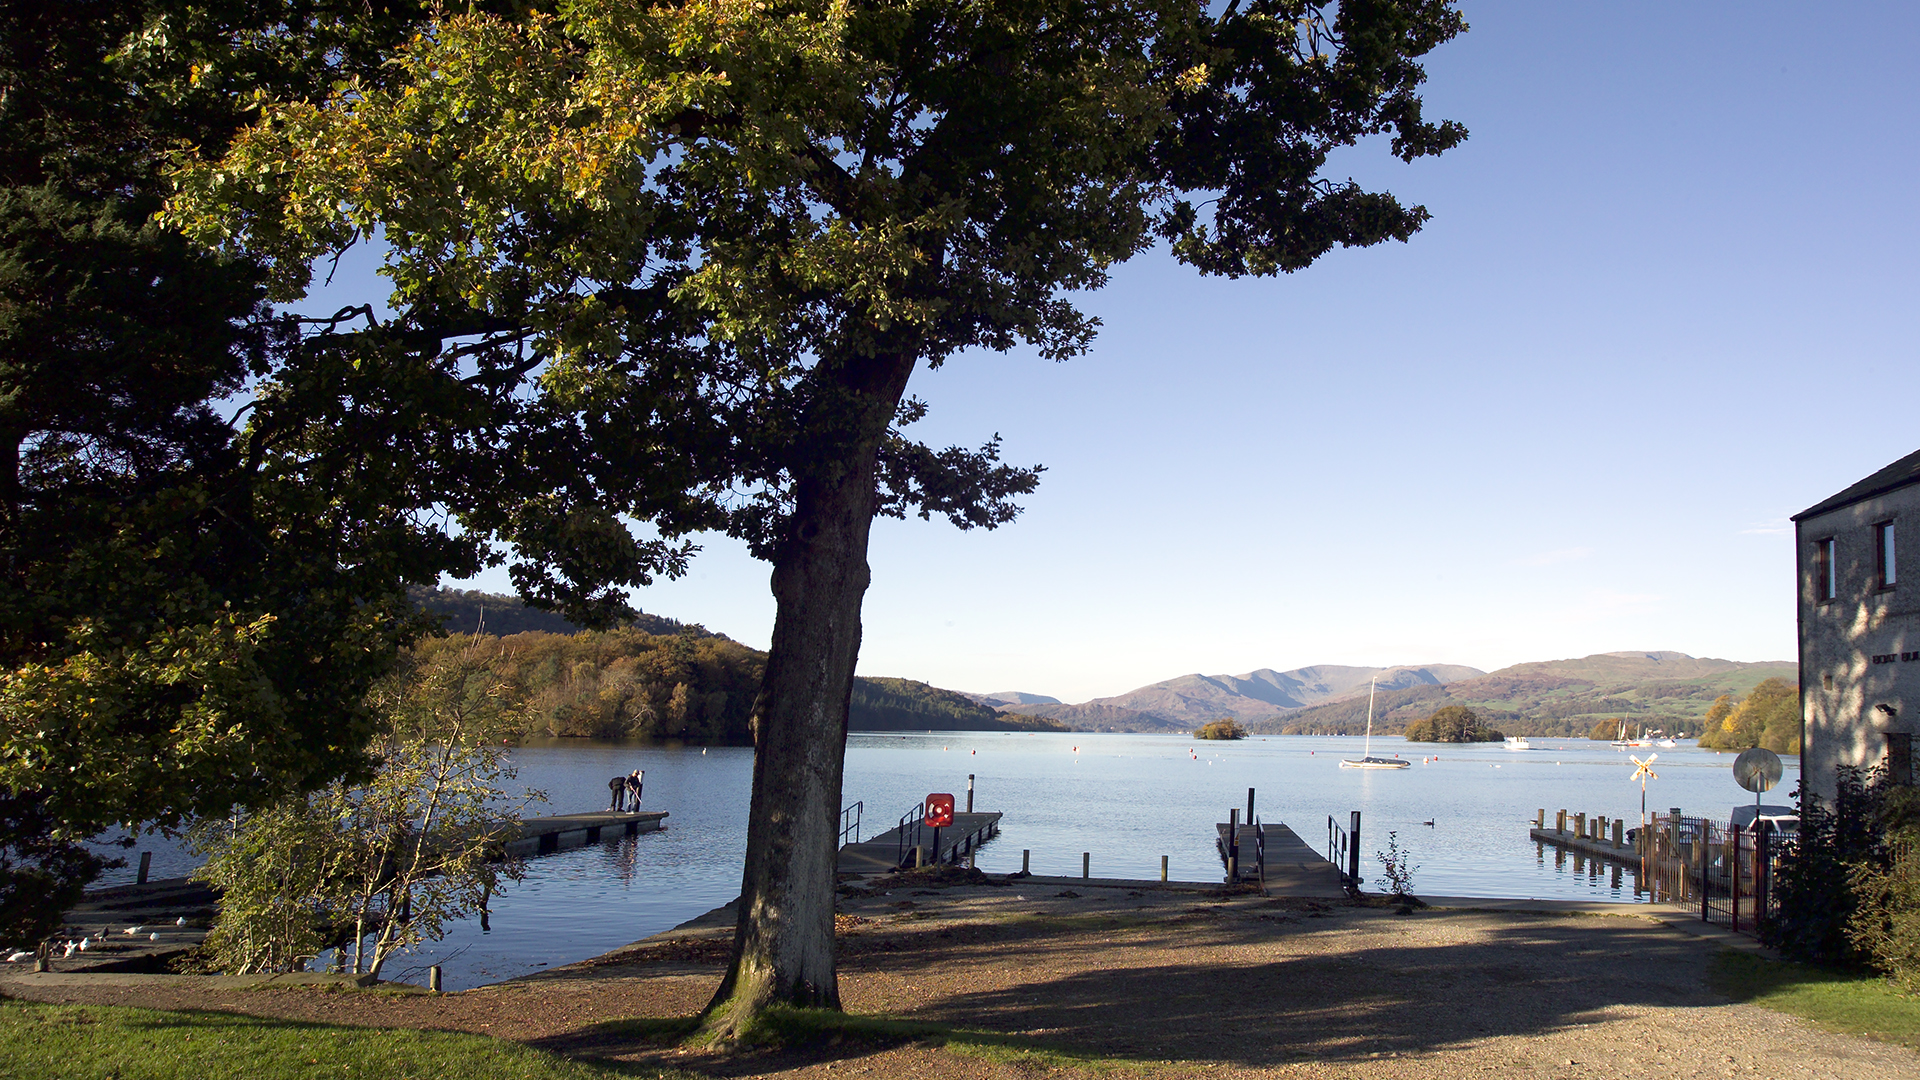 Location photograph for Lake District hotel brochure showing Windermere view from hotel groundsWindermere view north